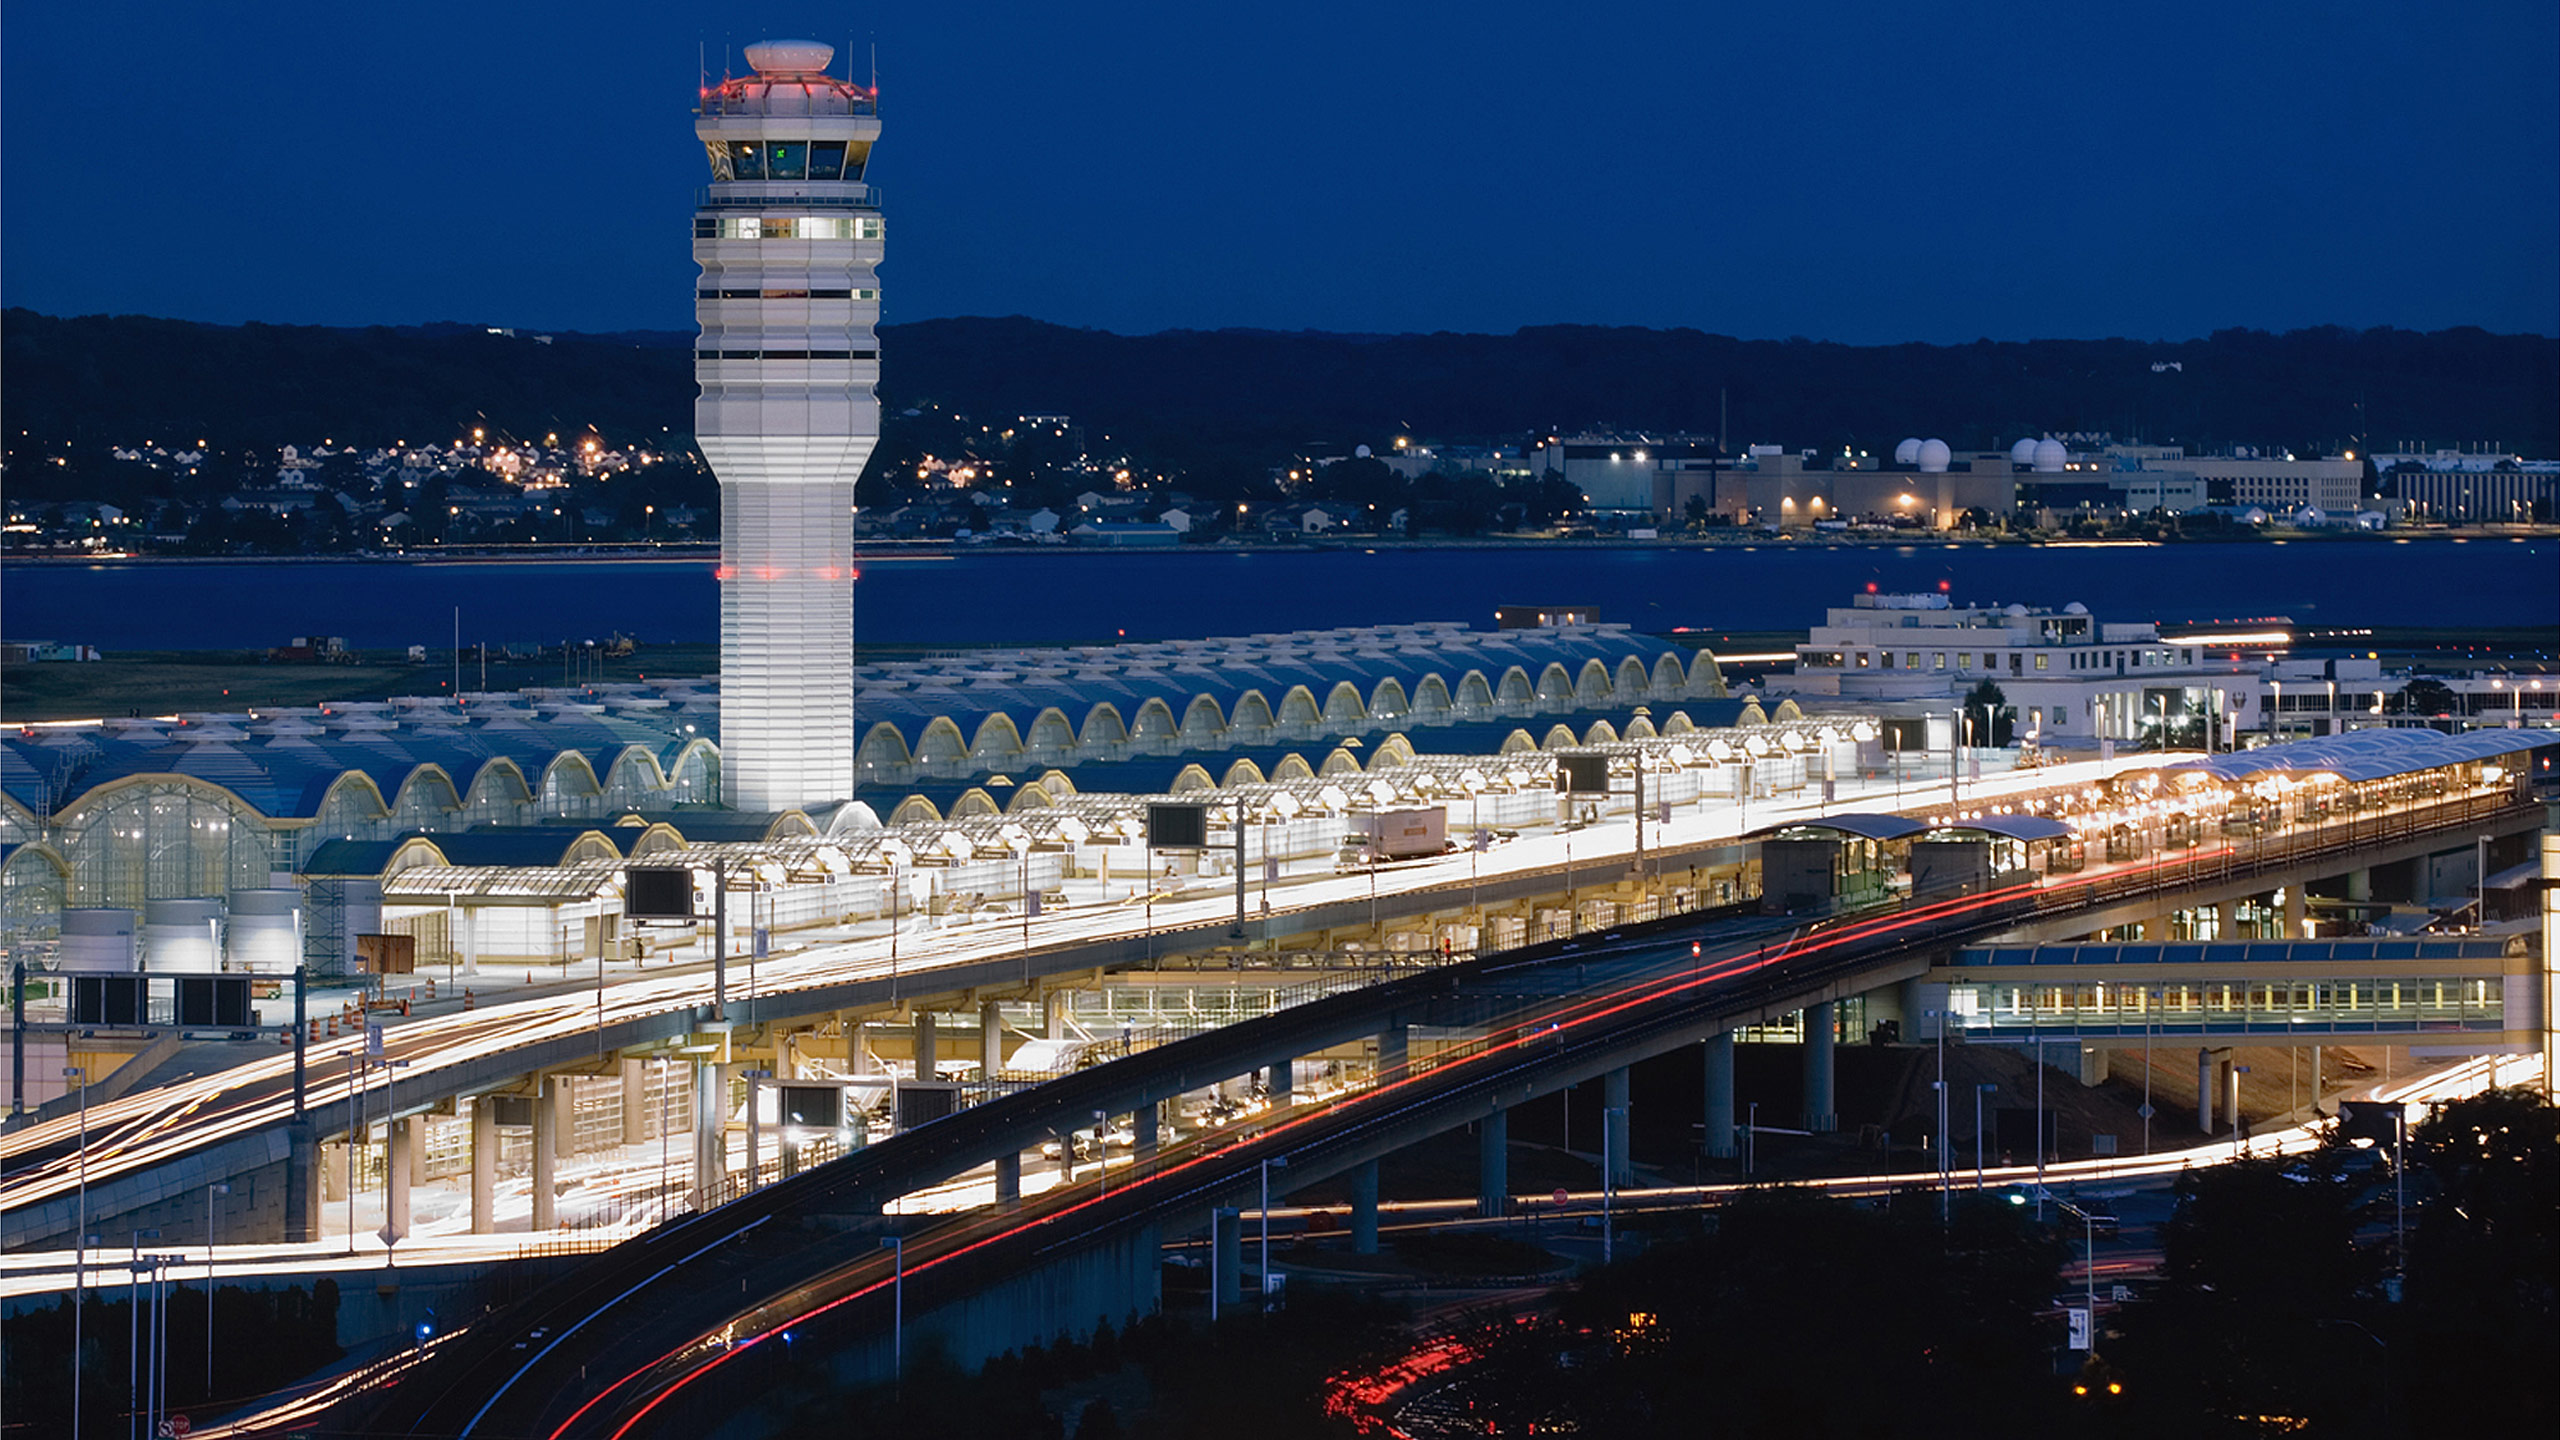 North Terminal – Reagan Washington National Airport / image 1